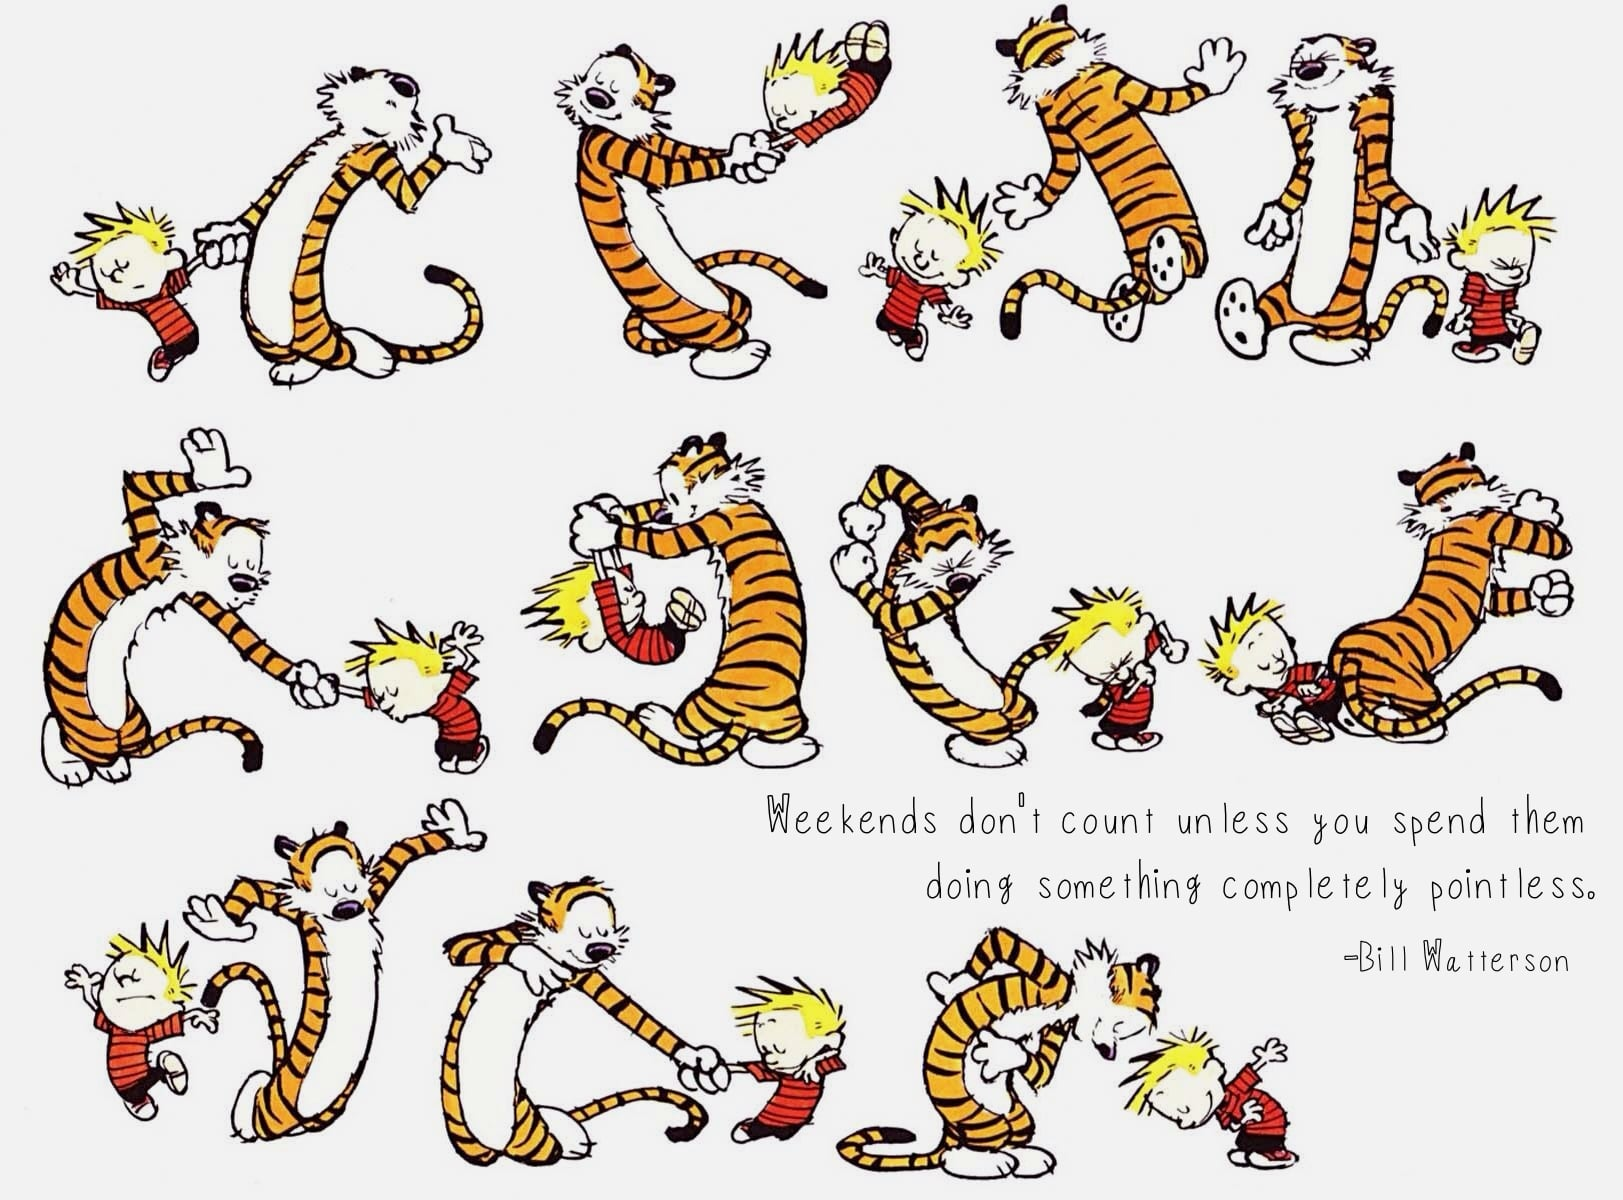 Bill-Watterson-quote-on-the-weekend